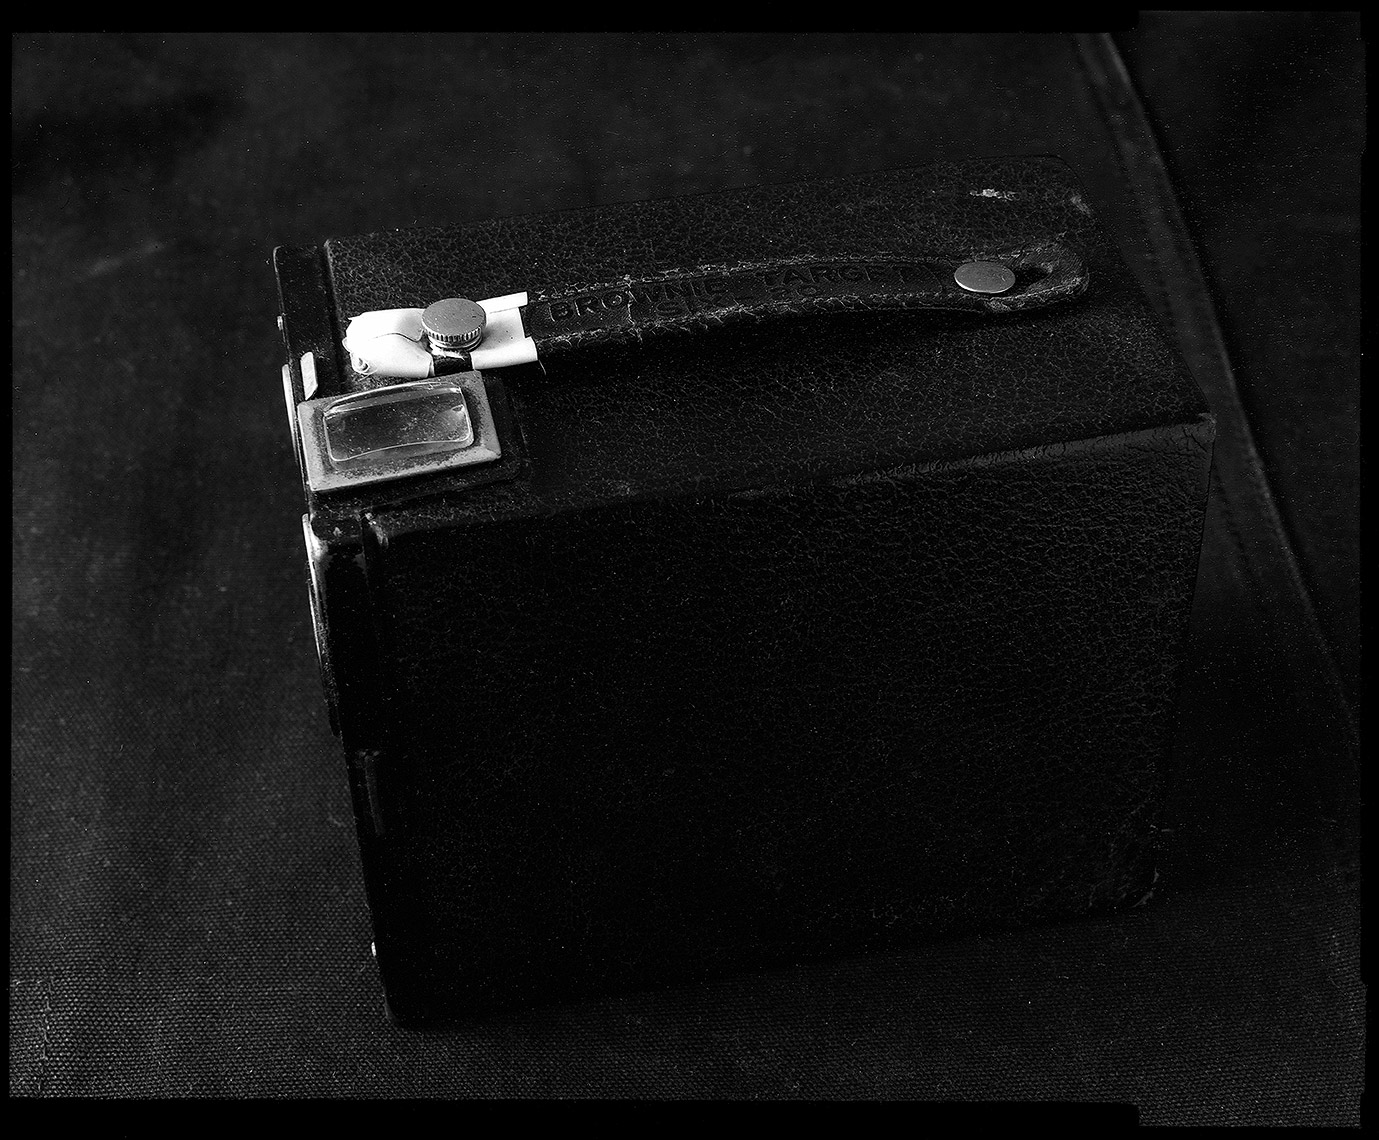 18-Kodak-Brownie-box-camera